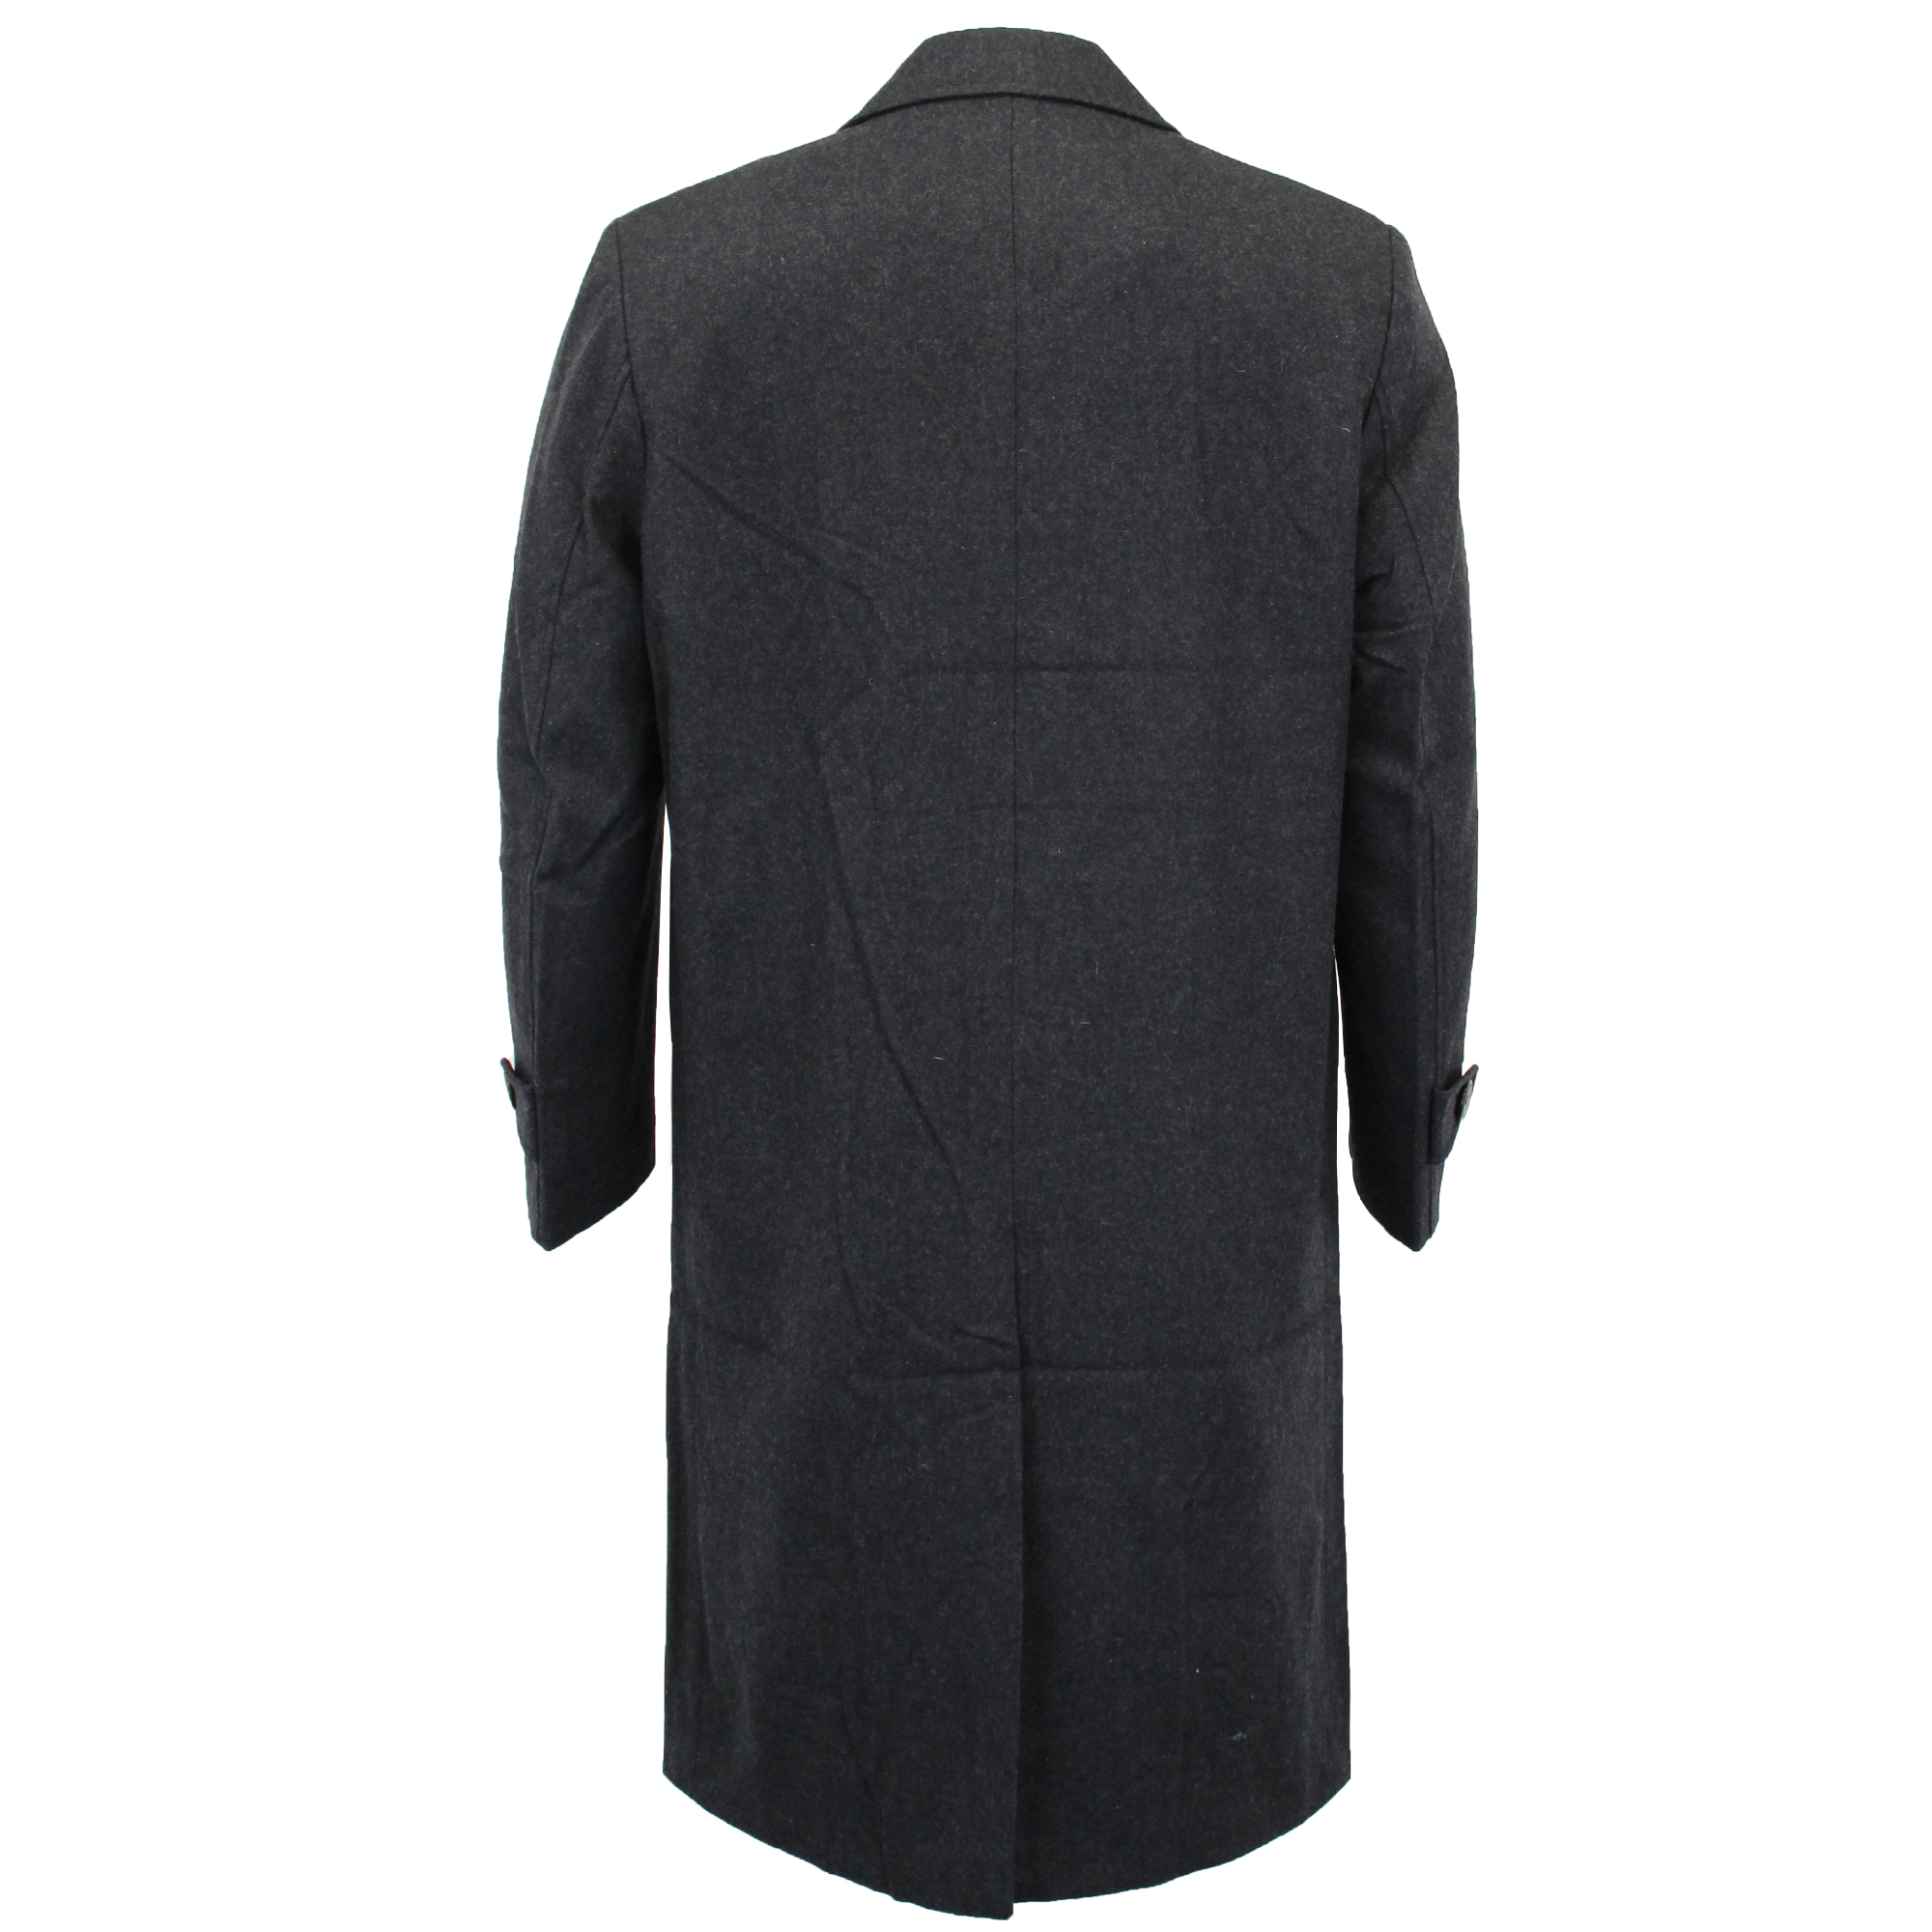 Mens-Wool-Mix-Jacket-Long-Trench-Coat-Collared-Concealed-Button-Lined-Winter-New thumbnail 6